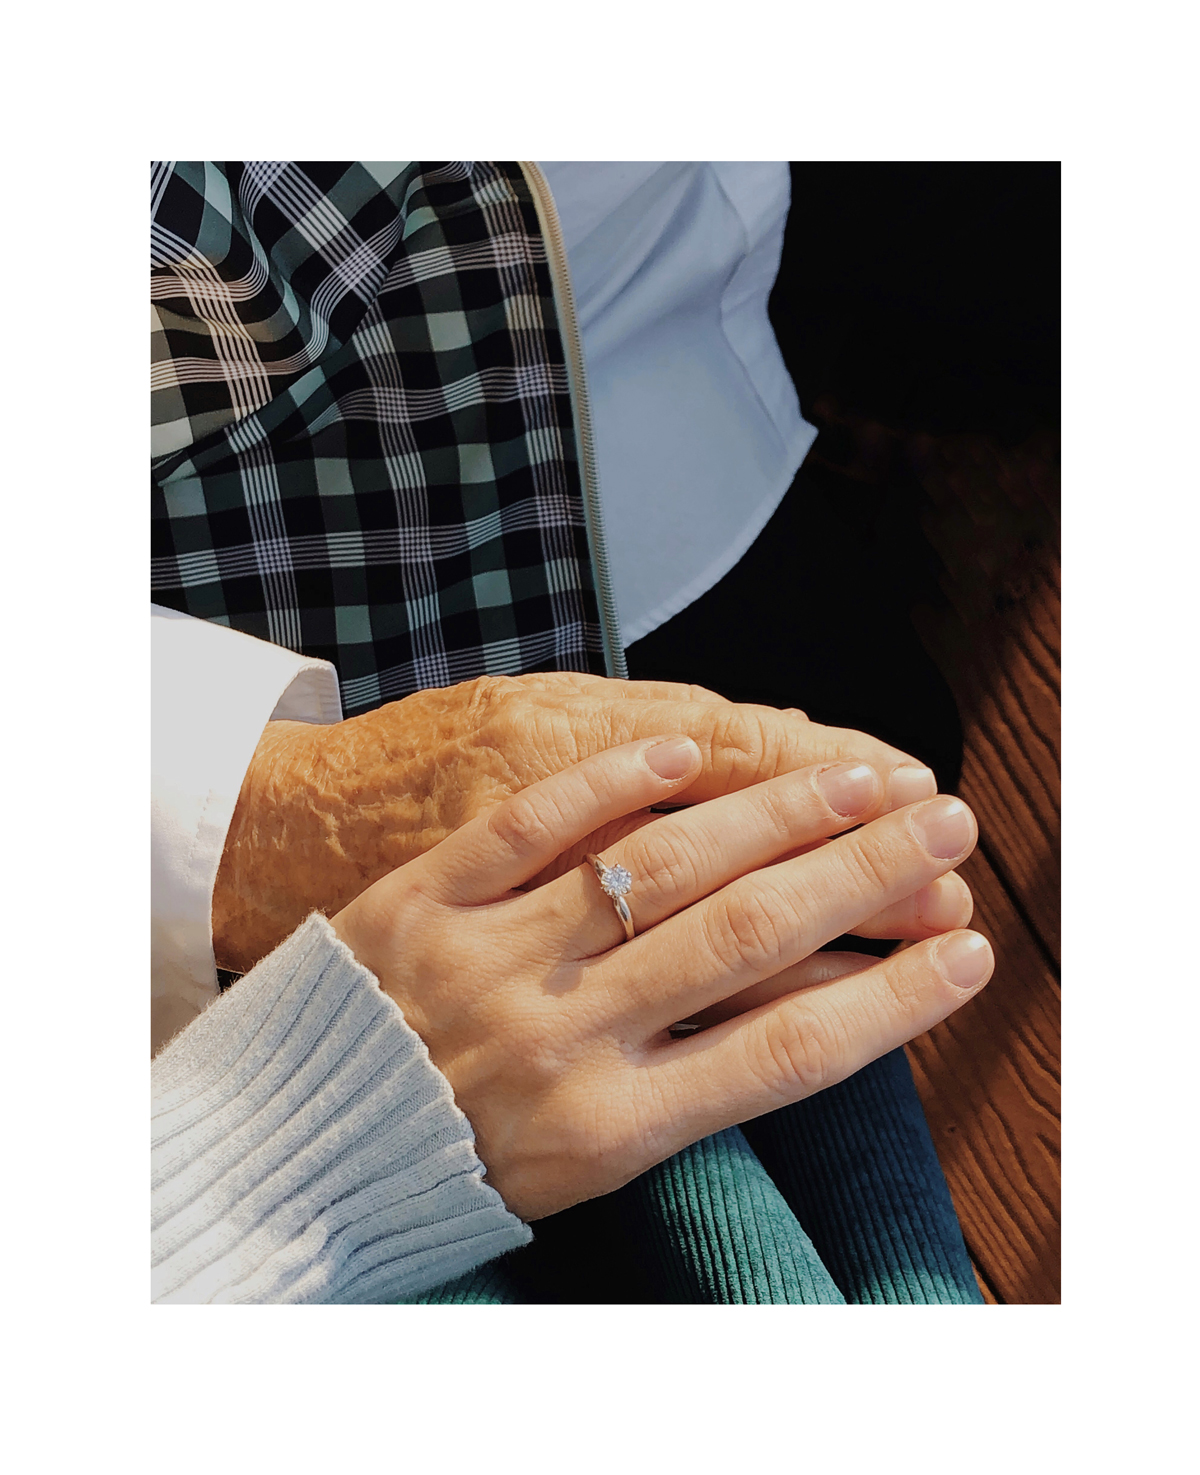 Photo by Molly Lopez of hand with ring resting on hand of parent